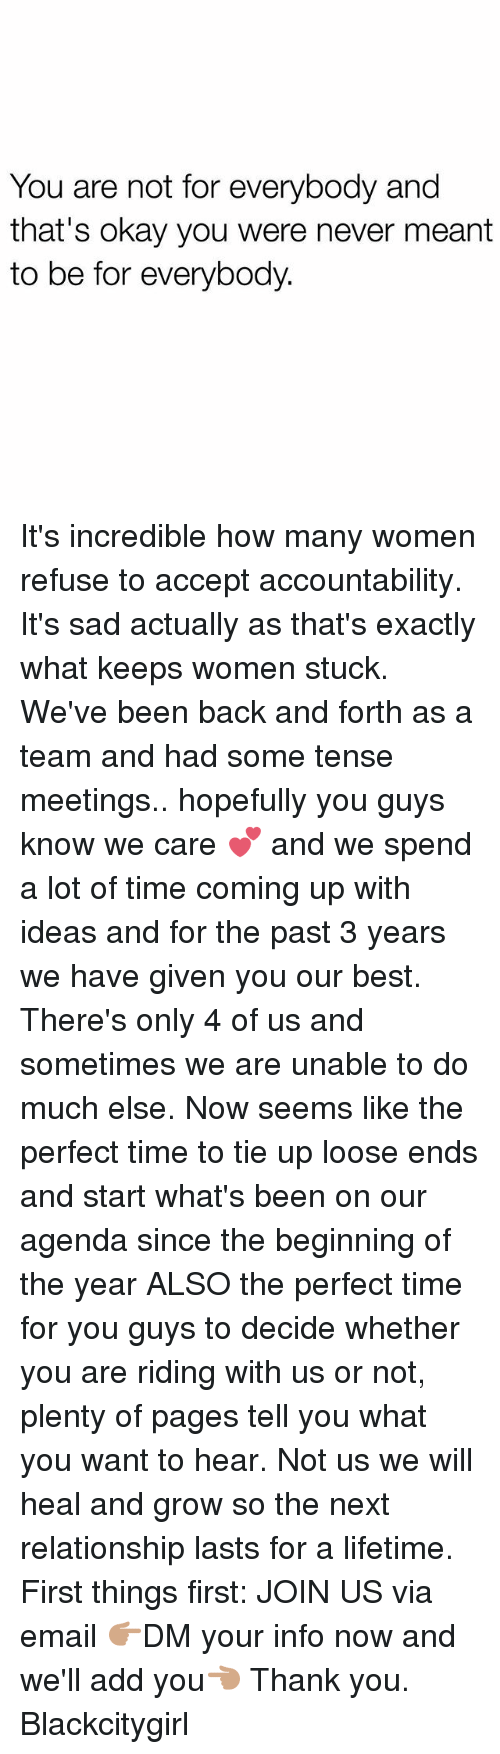 Memes, Thank You, and Best: You are not for everybody and  that's okay you were never meant  to be for everybody. It's incredible how many women refuse to accept accountability. It's sad actually as that's exactly what keeps women stuck. We've been back and forth as a team and had some tense meetings.. hopefully you guys know we care 💕 and we spend a lot of time coming up with ideas and for the past 3 years we have given you our best. There's only 4 of us and sometimes we are unable to do much else. Now seems like the perfect time to tie up loose ends and start what's been on our agenda since the beginning of the year ALSO the perfect time for you guys to decide whether you are riding with us or not, plenty of pages tell you what you want to hear. Not us we will heal and grow so the next relationship lasts for a lifetime. First things first: JOIN US via email 👉🏽DM your info now and we'll add you👈🏽 Thank you. Blackcitygirl